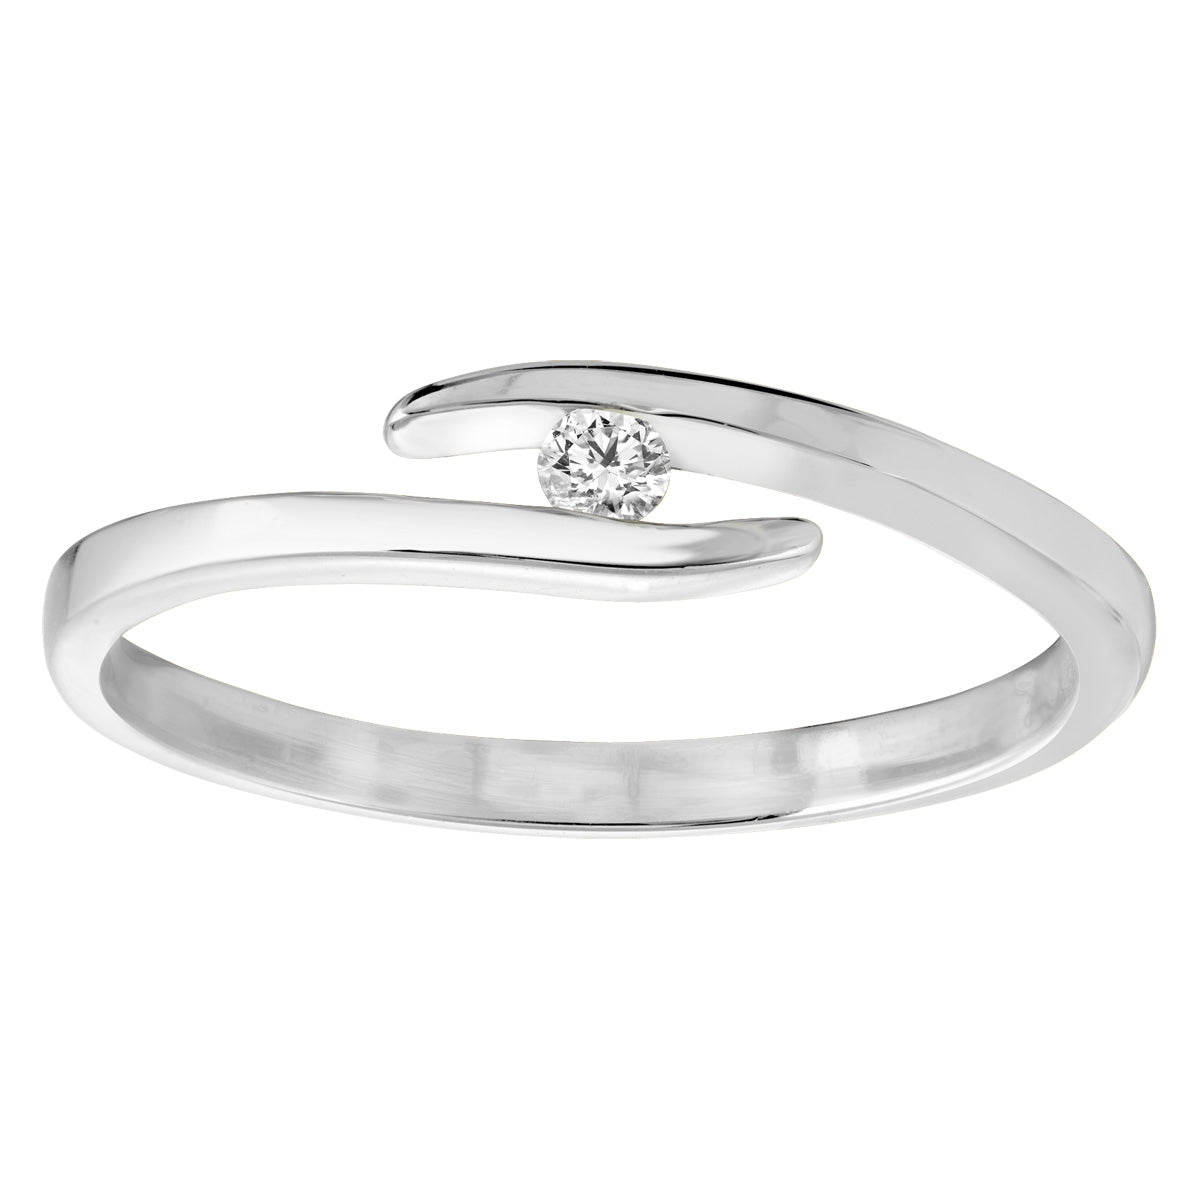 Jessica Jewellery white gold floating diamond ring.